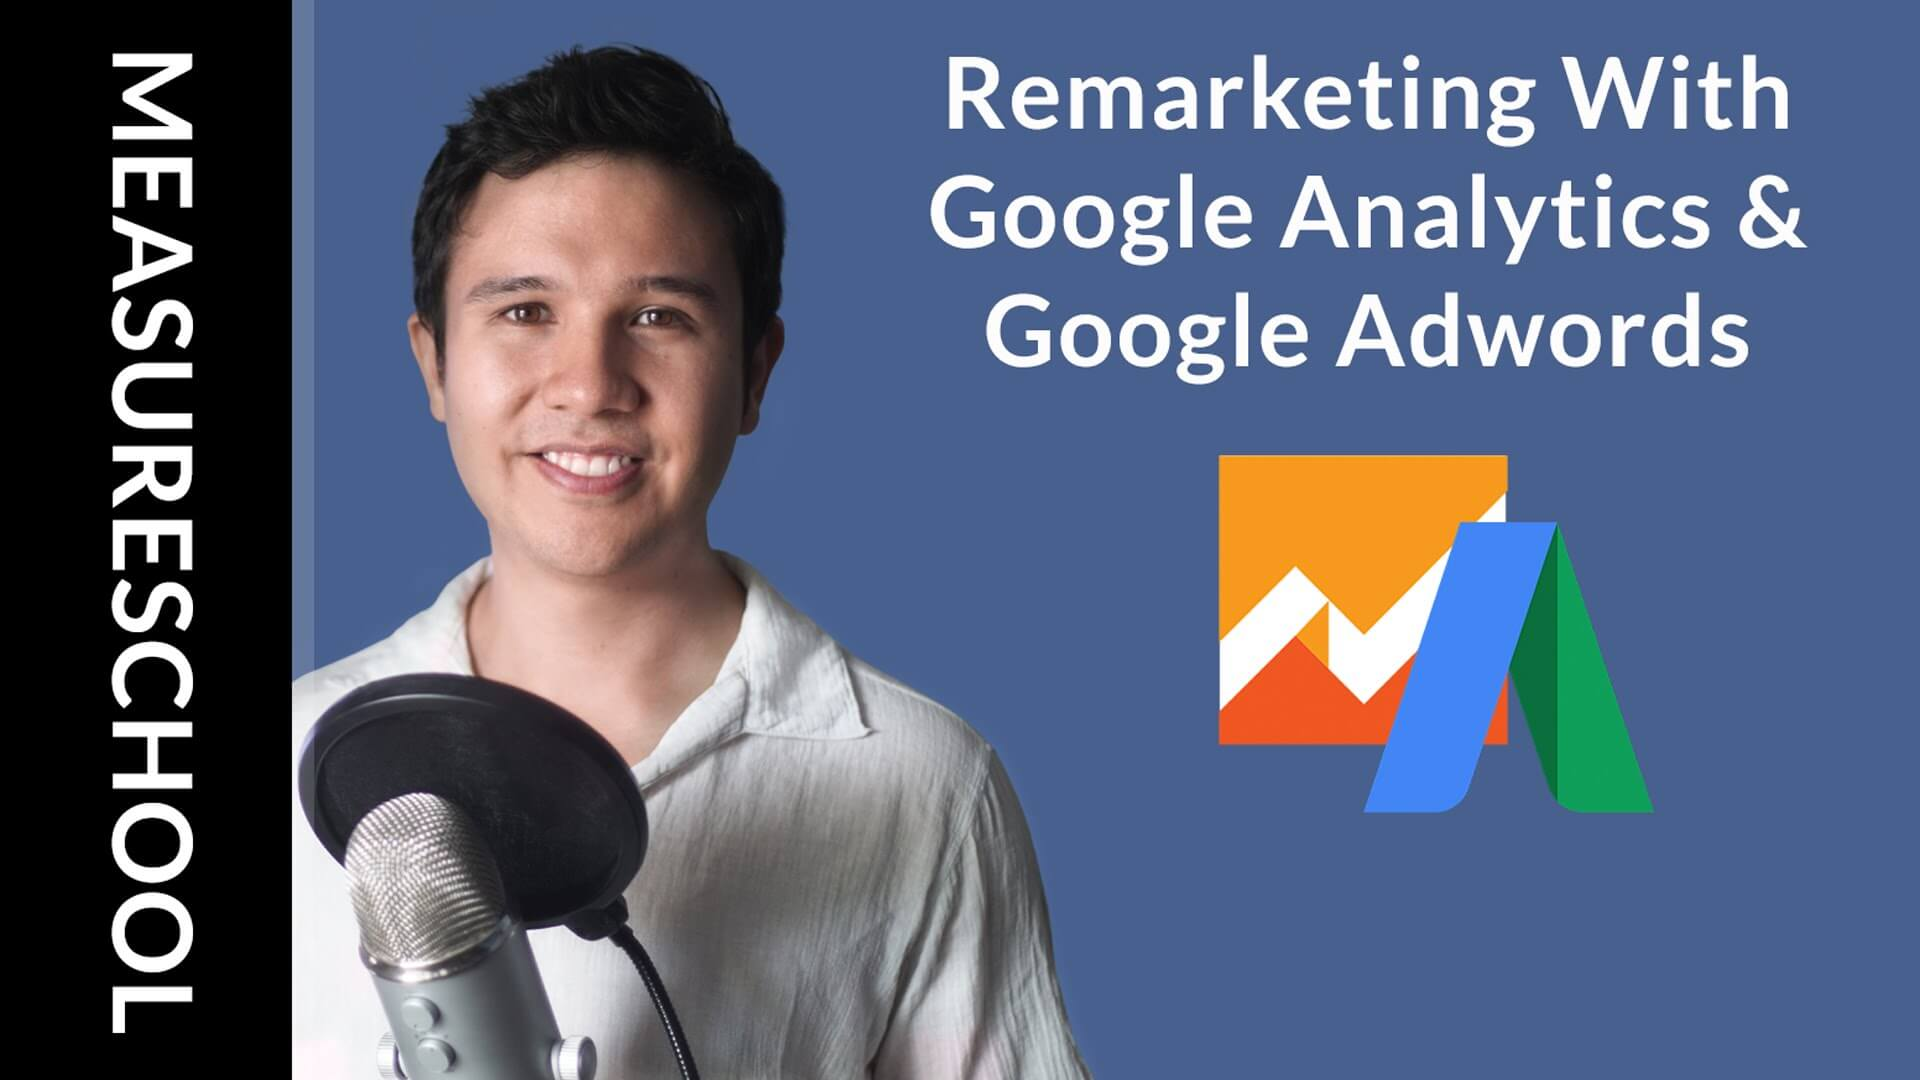 Setting Up Google Adwords Remarketing Audiences with Google Analytics